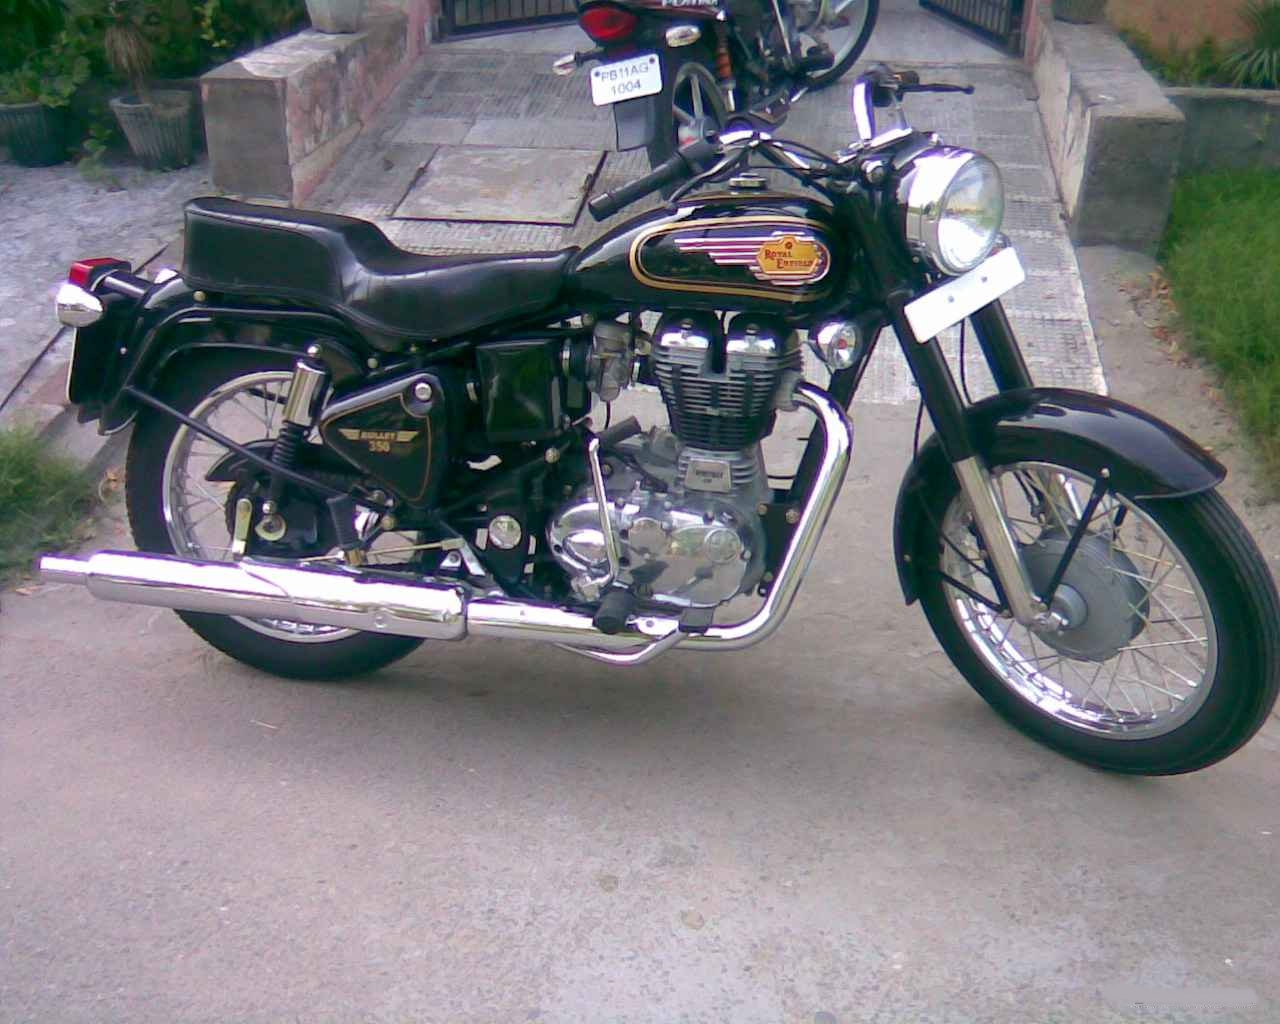 Enfield Bullet 350 UCE #2